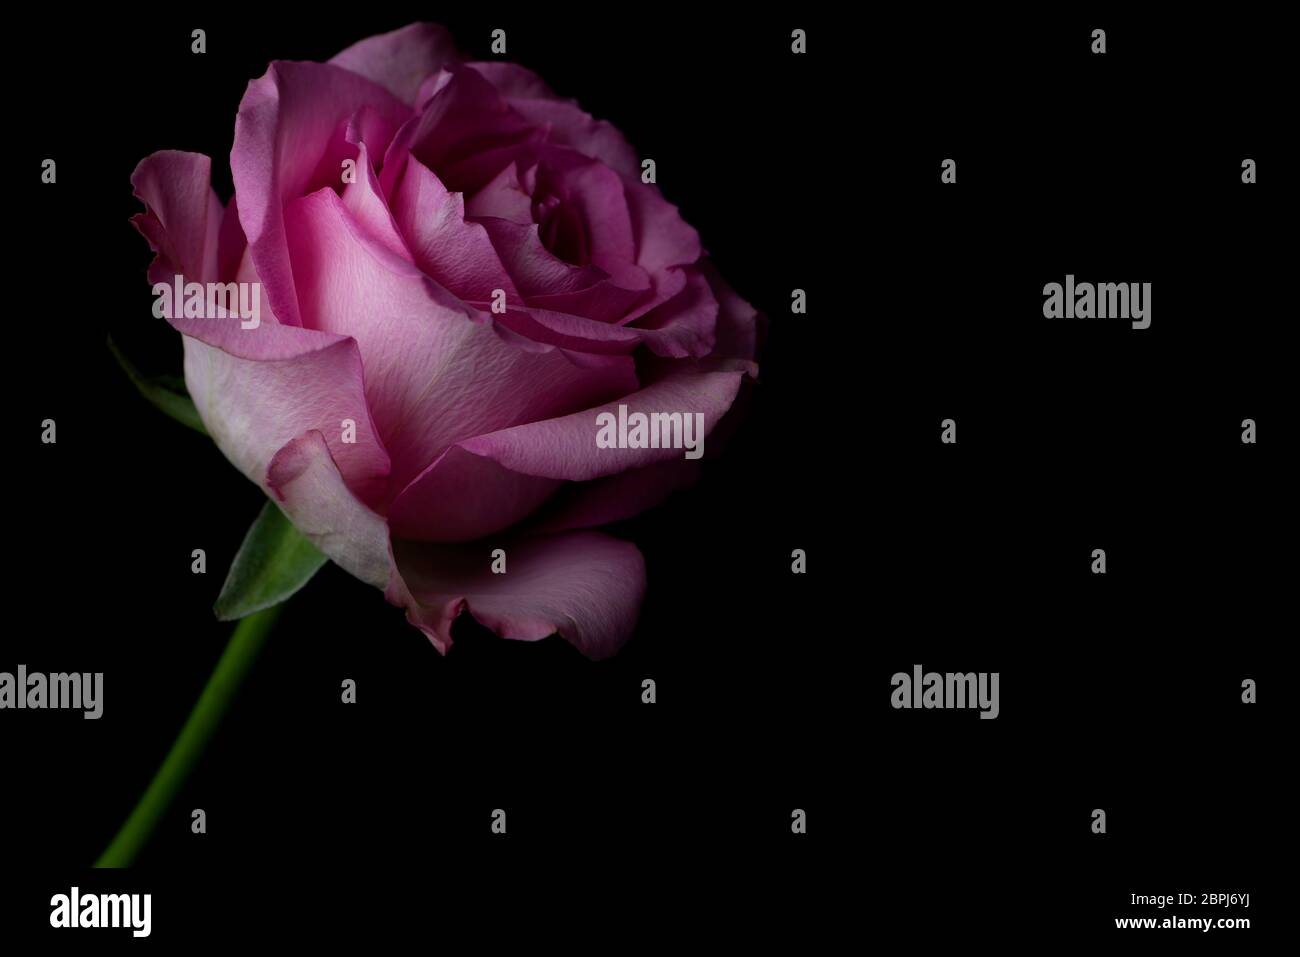 Light Pink Rose Black Background High Resolution Stock Photography And Images Alamy